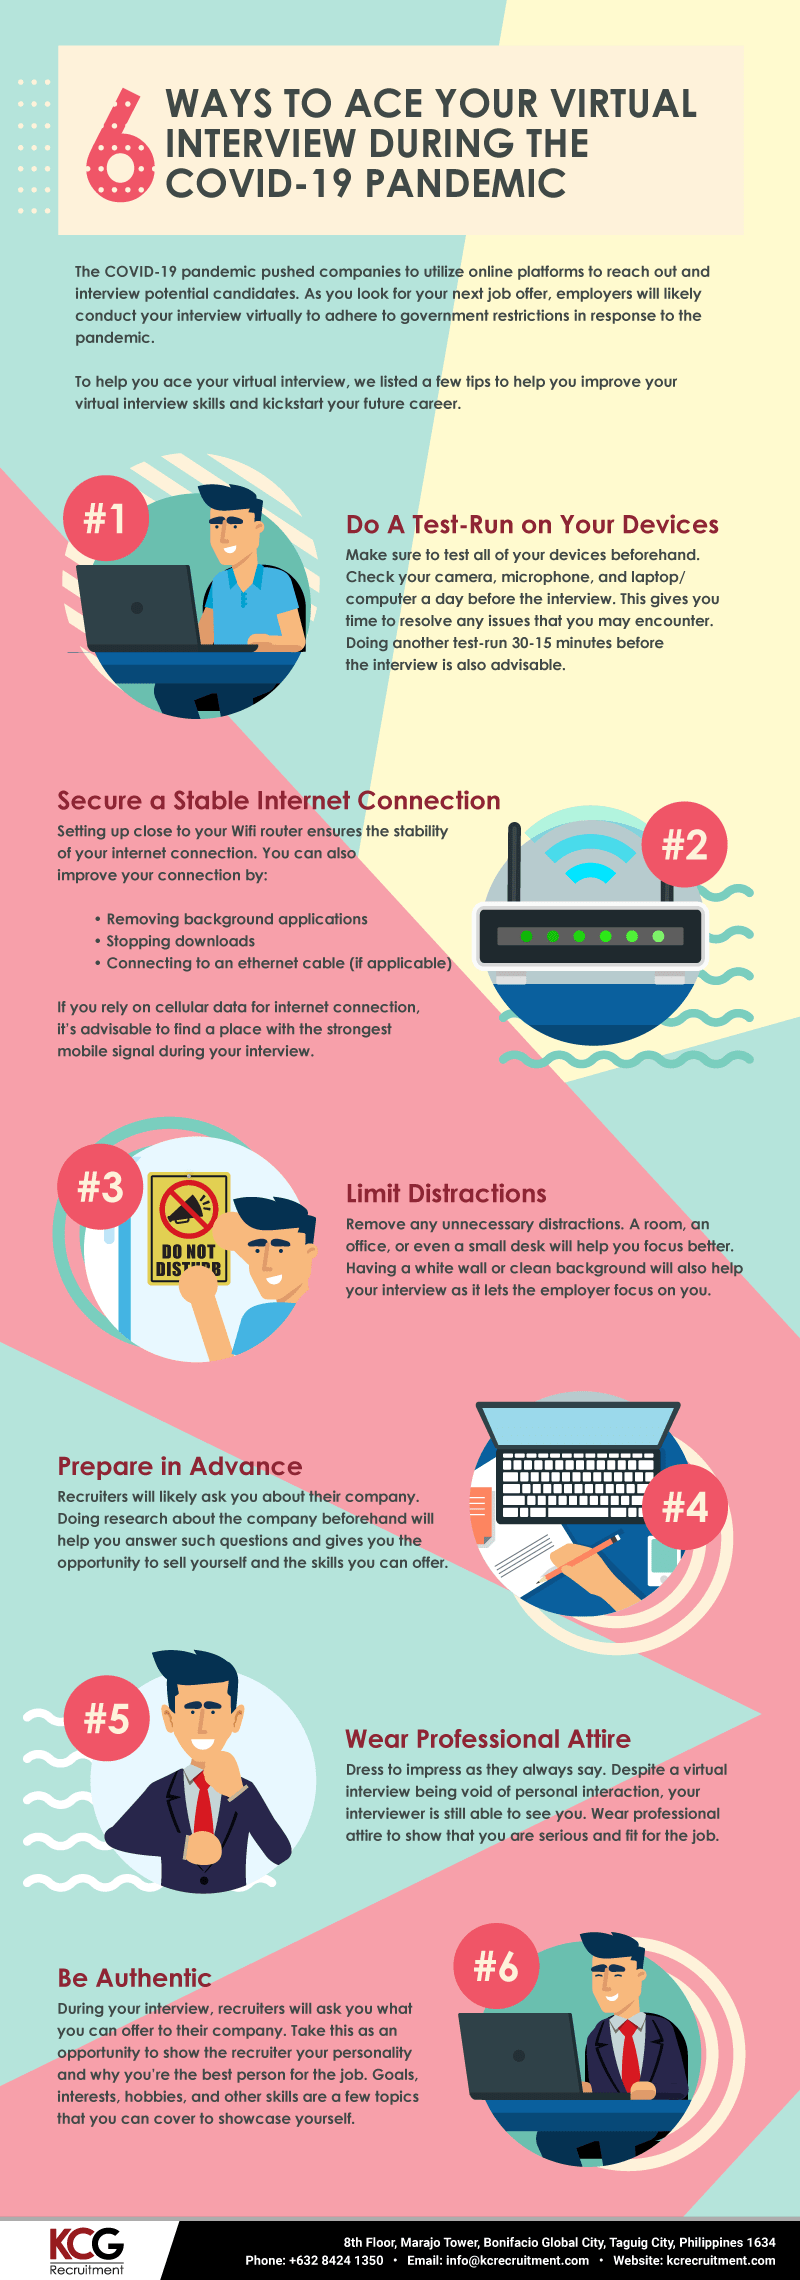 6 Ways To Ace Your Virtual Interview During the COVID-19 Pandemic [Infographic]